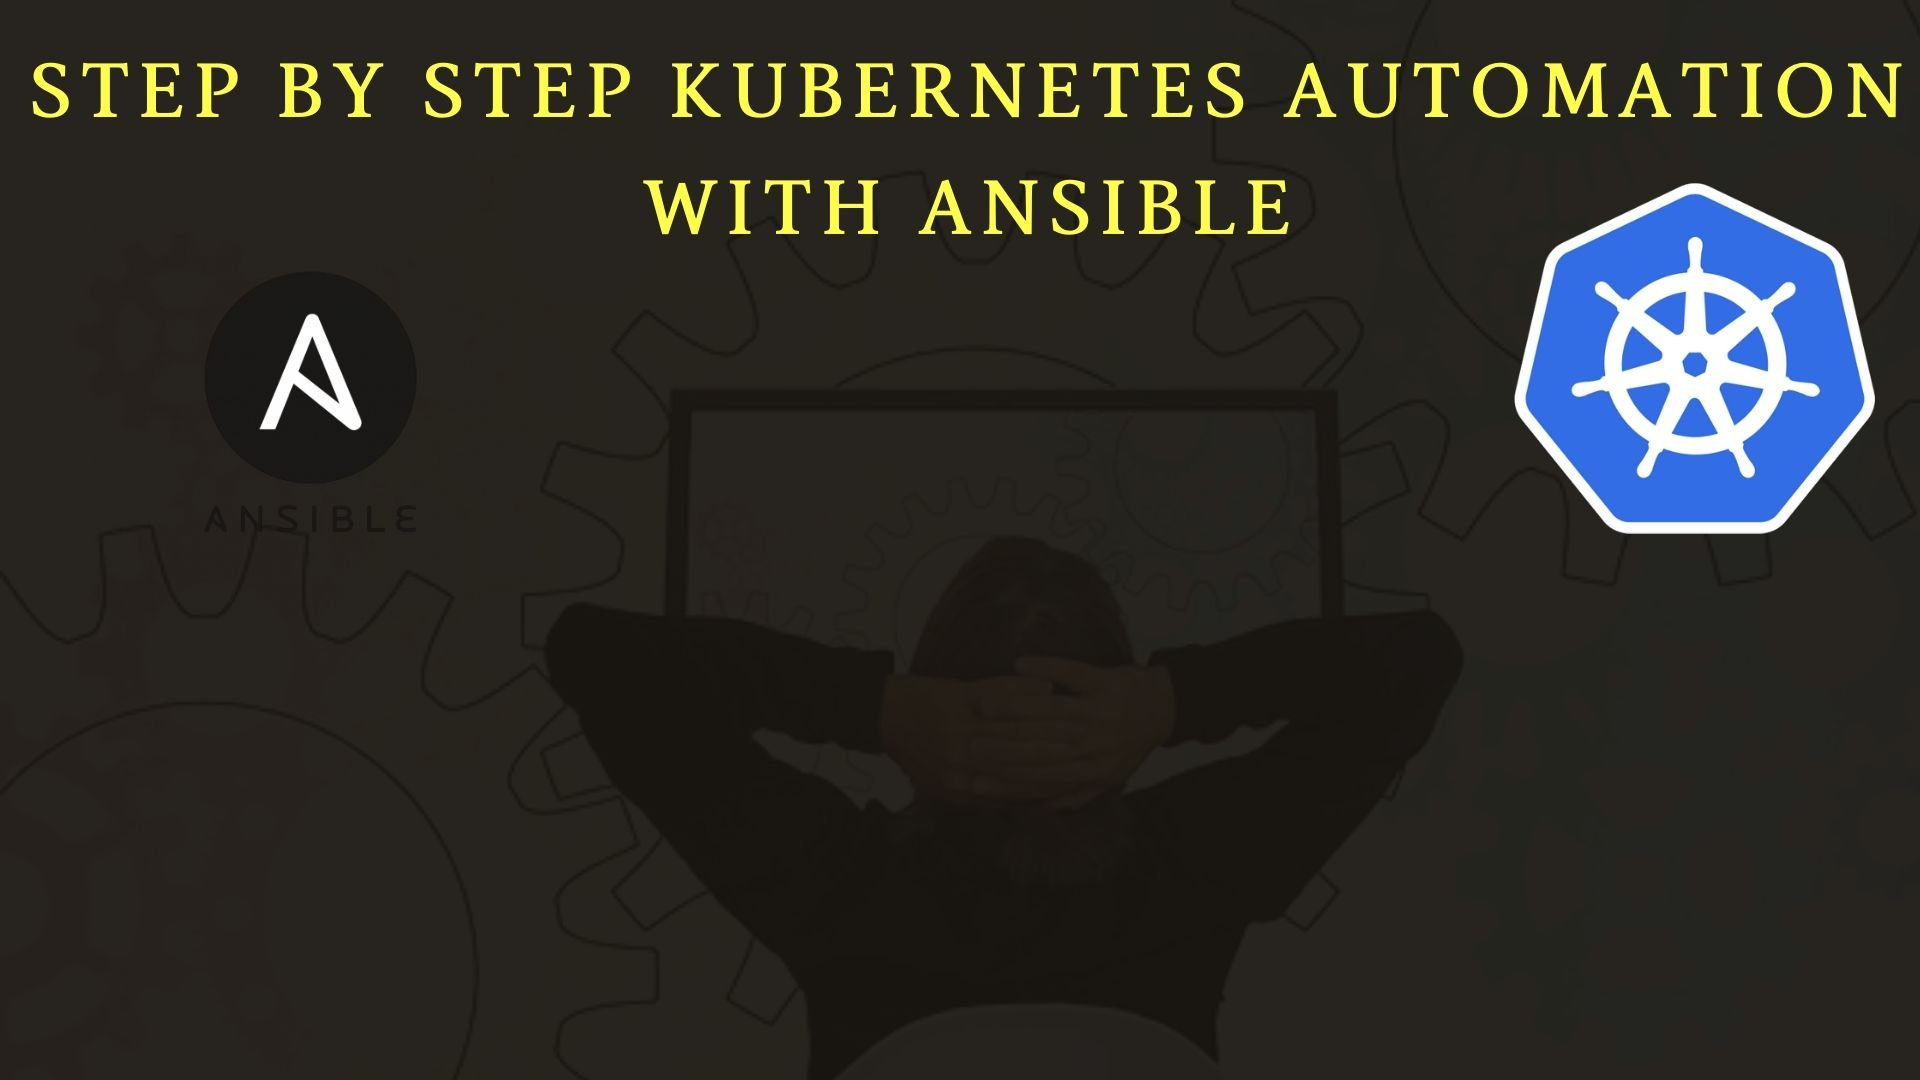 Step By Step Kubernetes Automation With Ansible